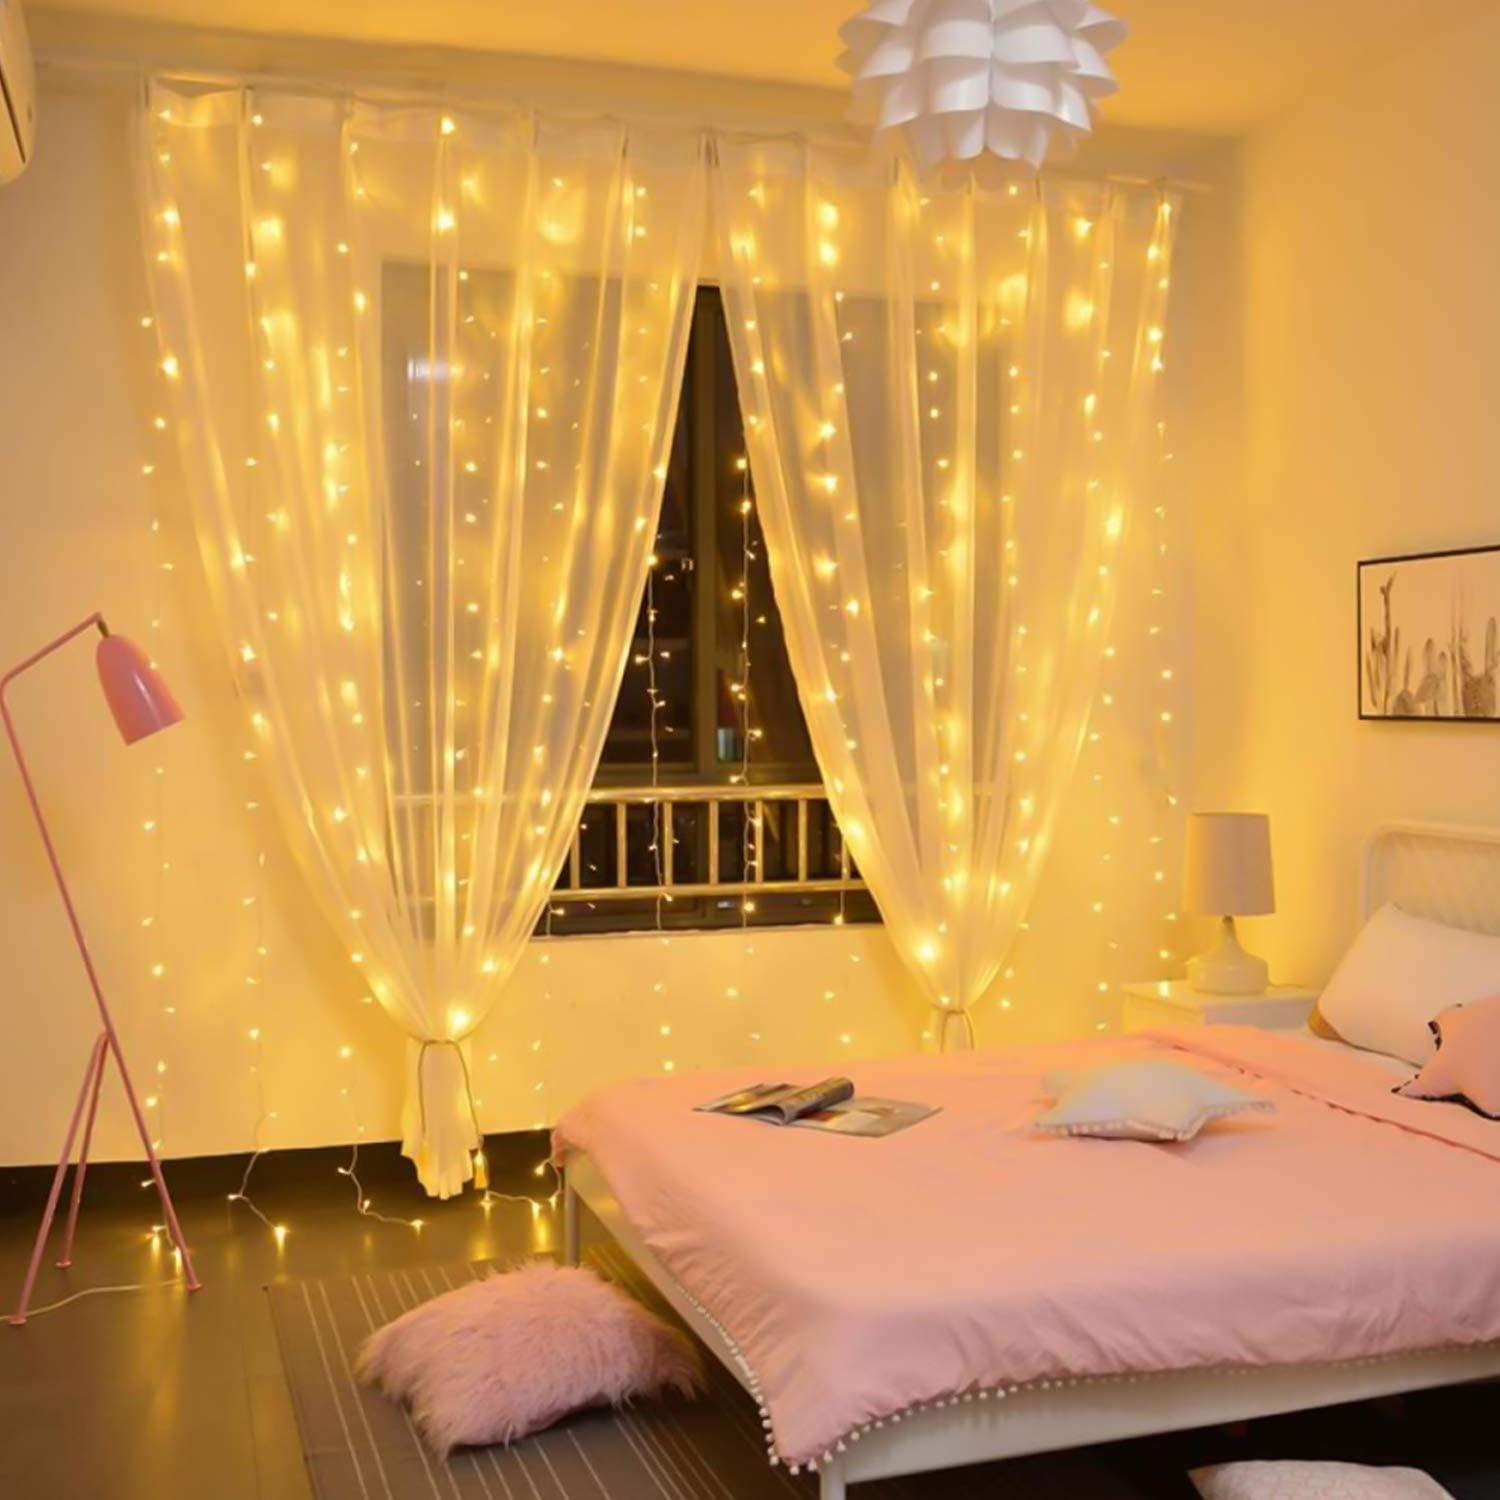 3m Led Usb Power Remote Control Curtain Fairy Lights Christmas Garland Lights Led String Lights Party Garden Home Wedding Decor Christmas Home Decorations Christmas House Decor From Freshlife2020 5 42 Dhgate Com